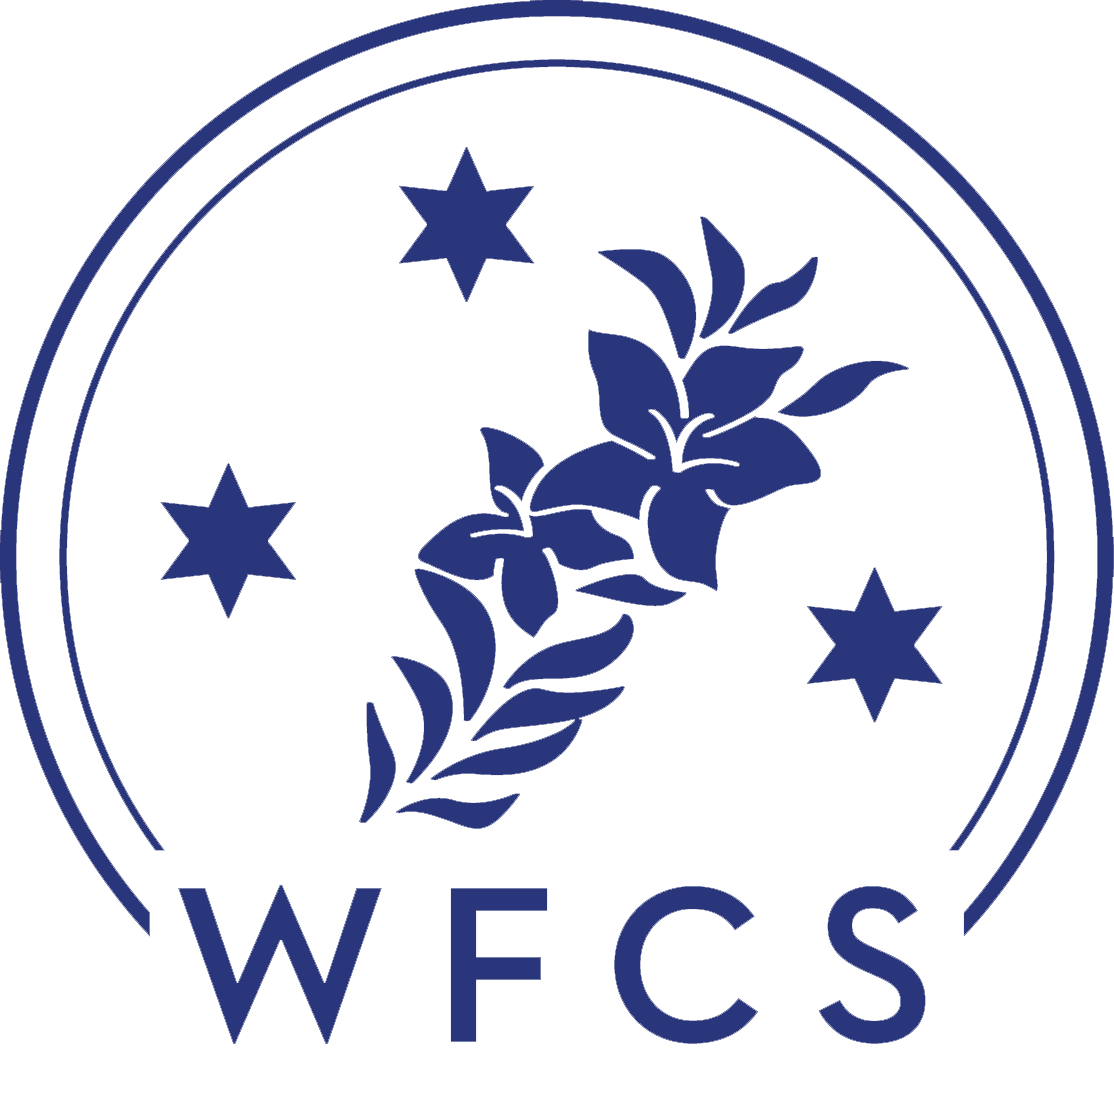 Wilfrid Faber Counselling & Support (WFCS)